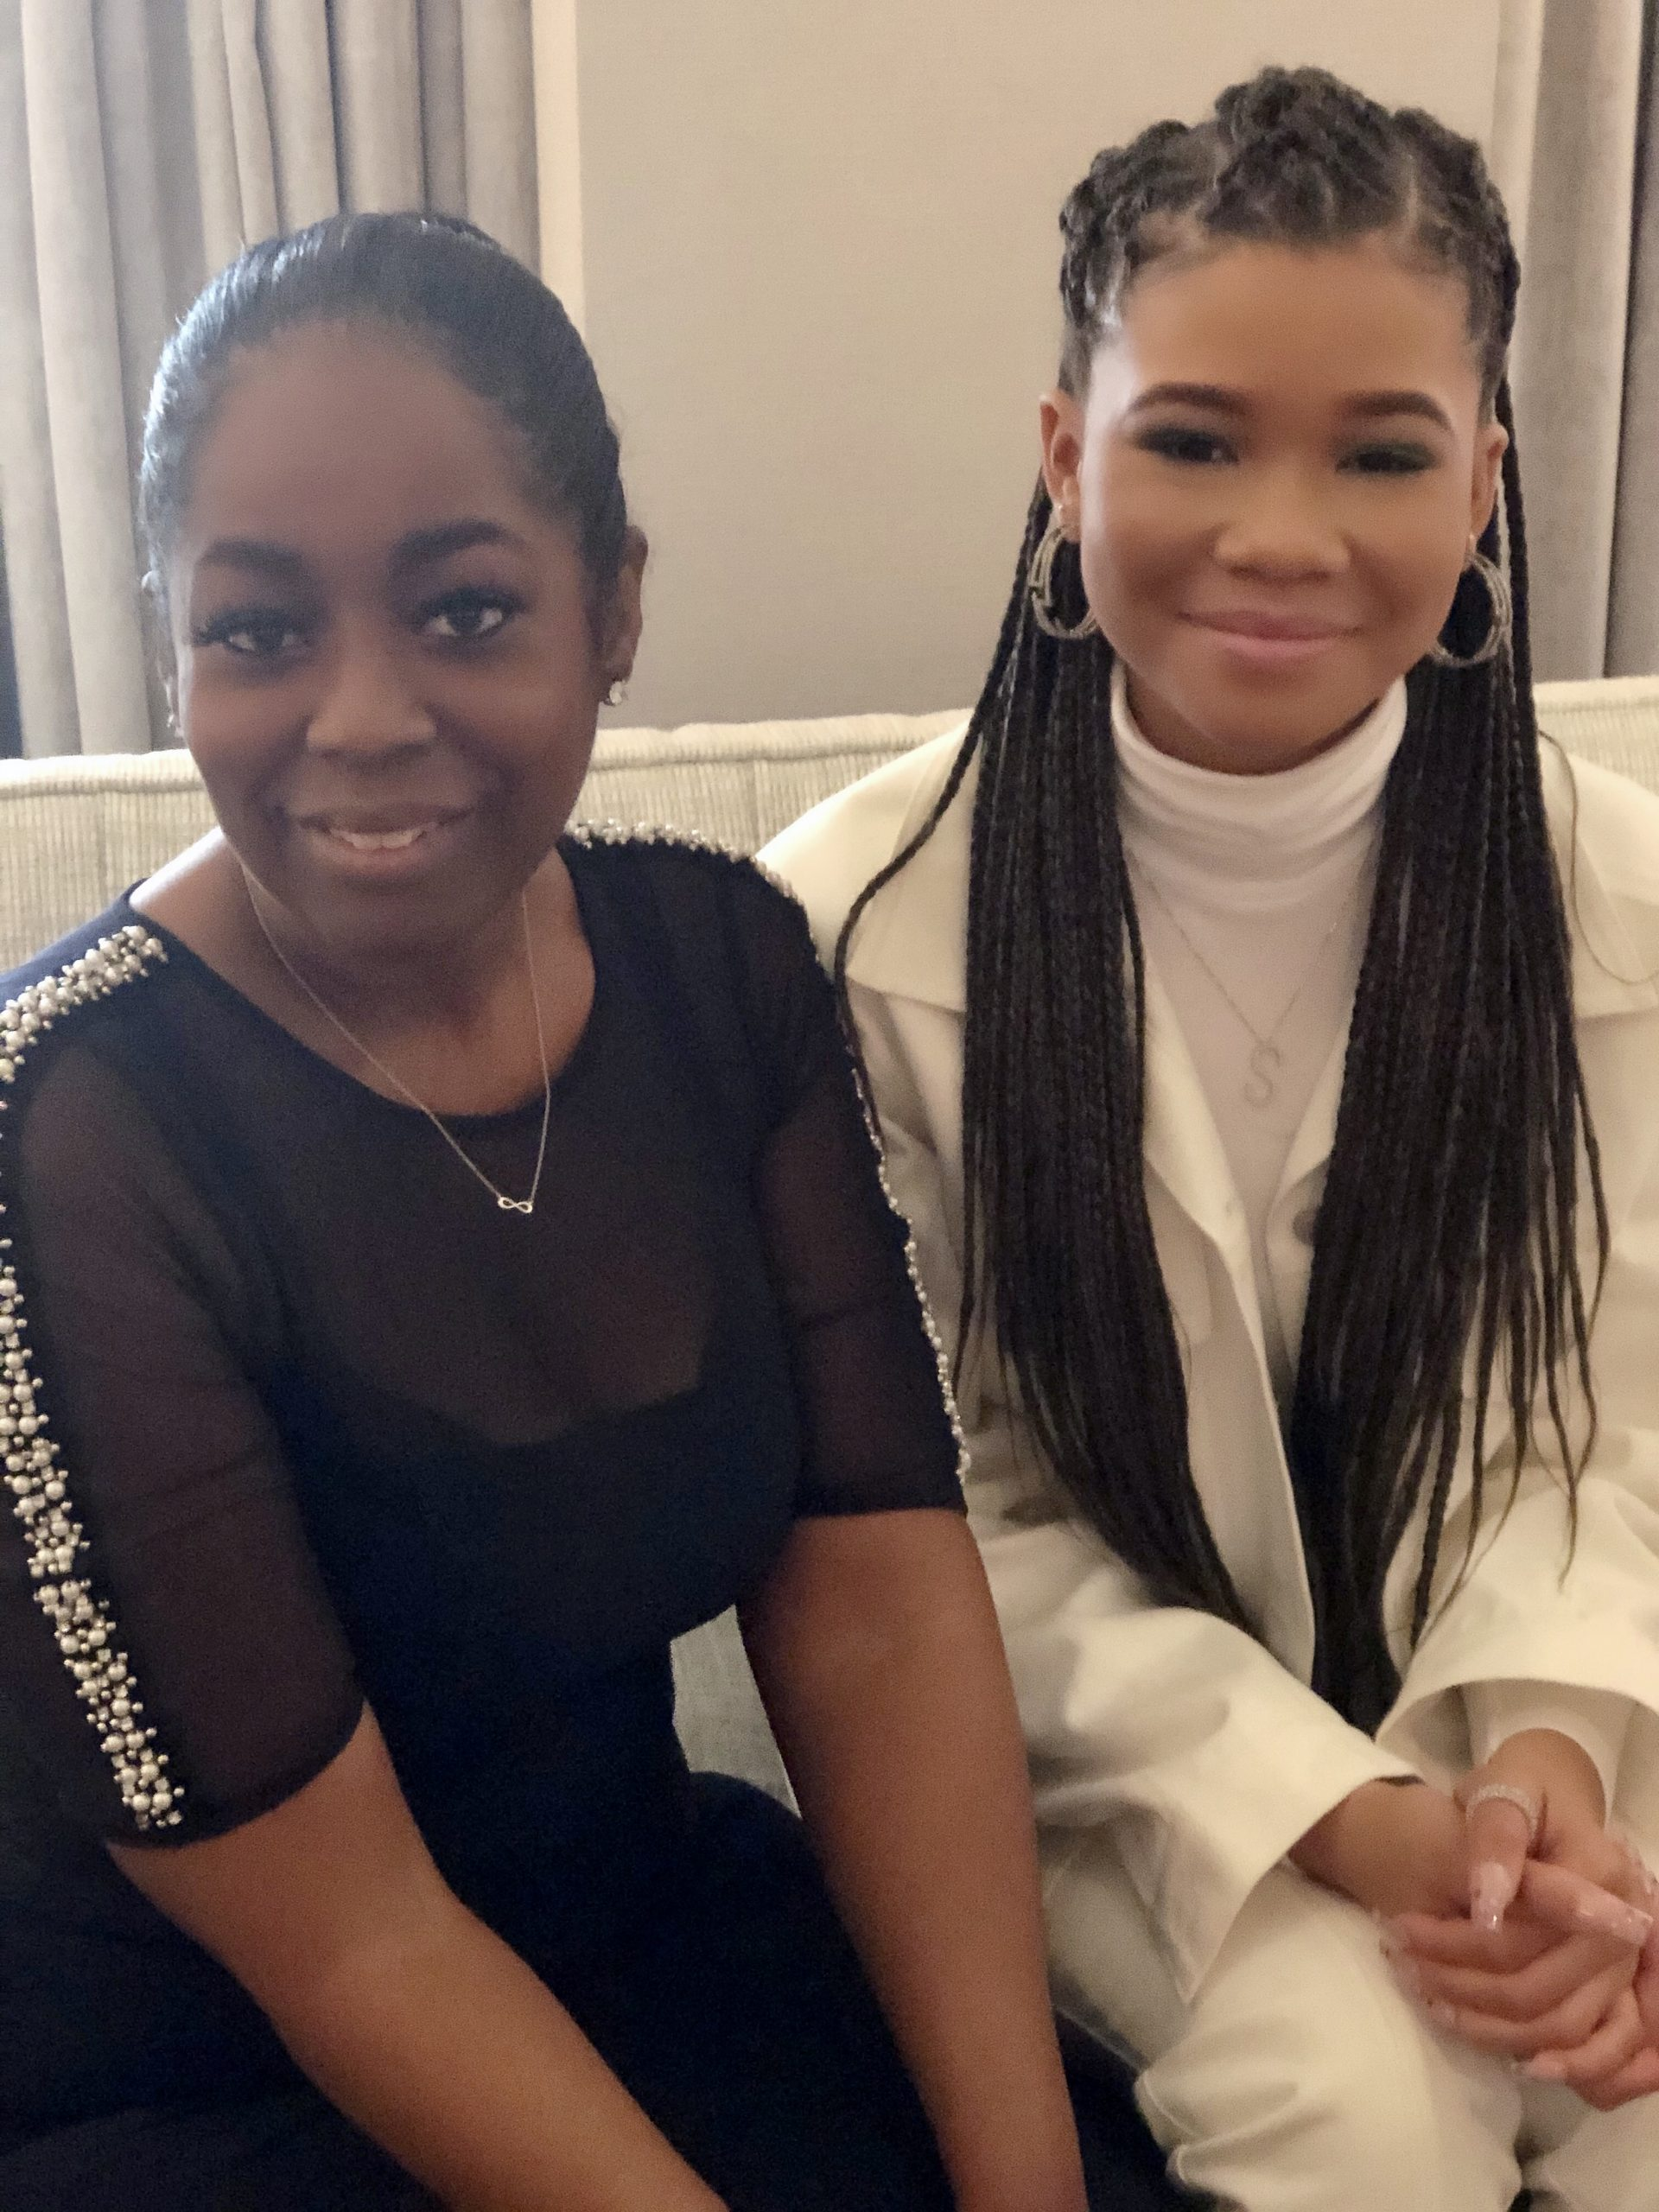 Roundtable Discussion With Actress & Atlanta Native Storm Reid About Her New Film 'Invisible Man'